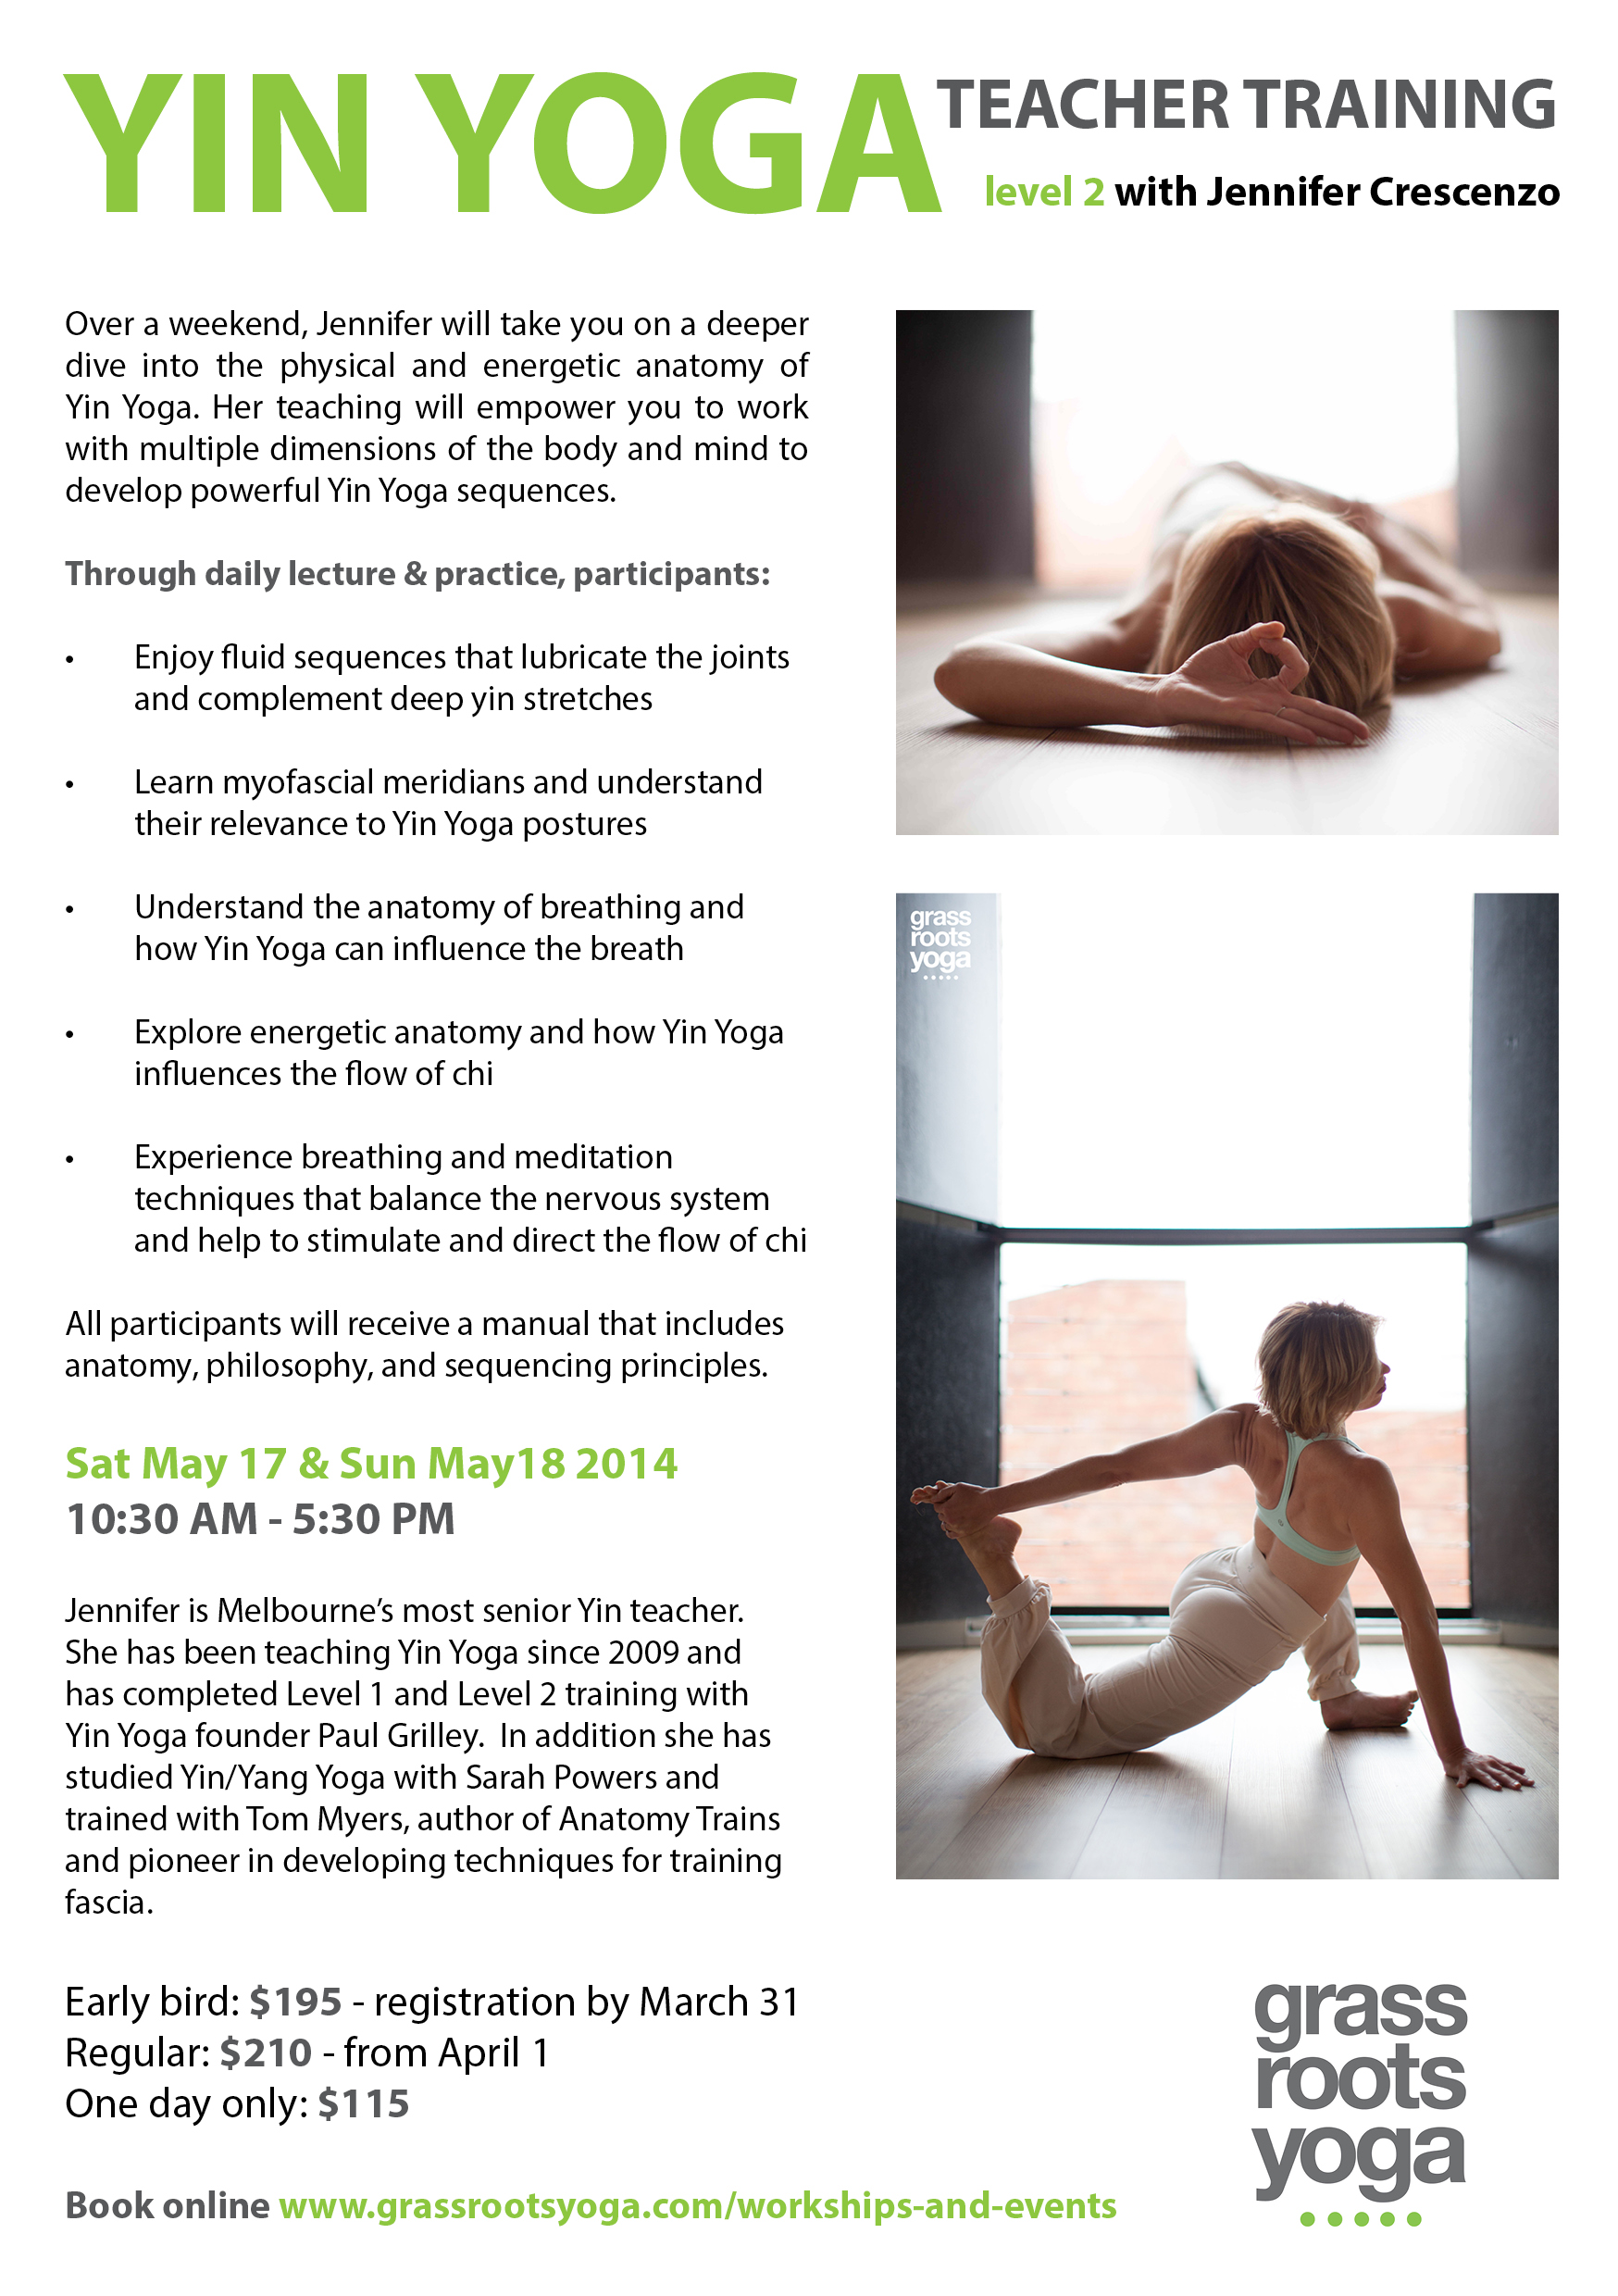 YinYoga TT Level 2 with Jennifer Crescenzo